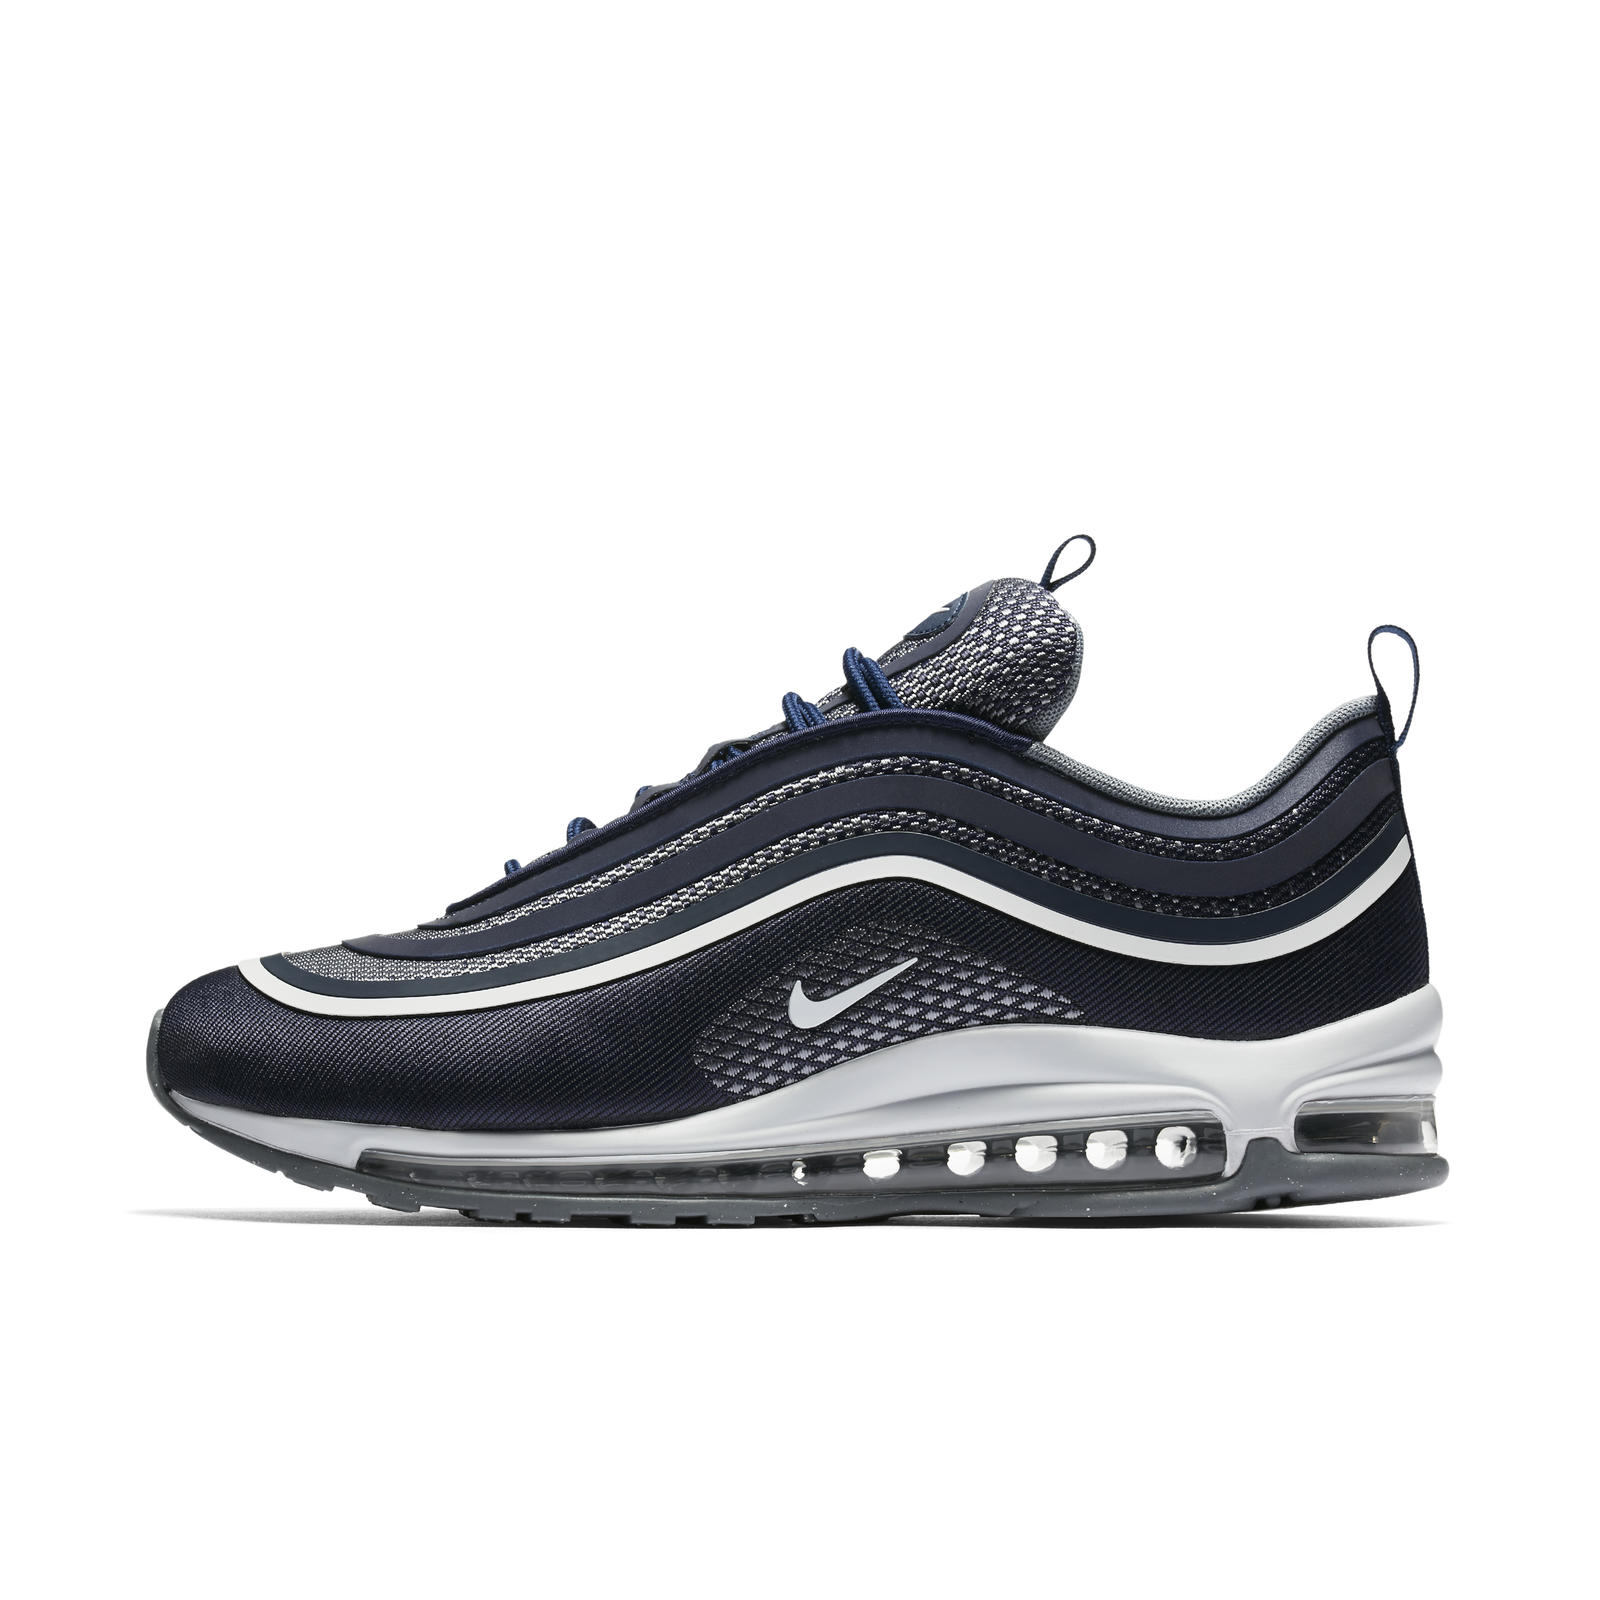 new fall colorways for the air max 97 nike news. Black Bedroom Furniture Sets. Home Design Ideas